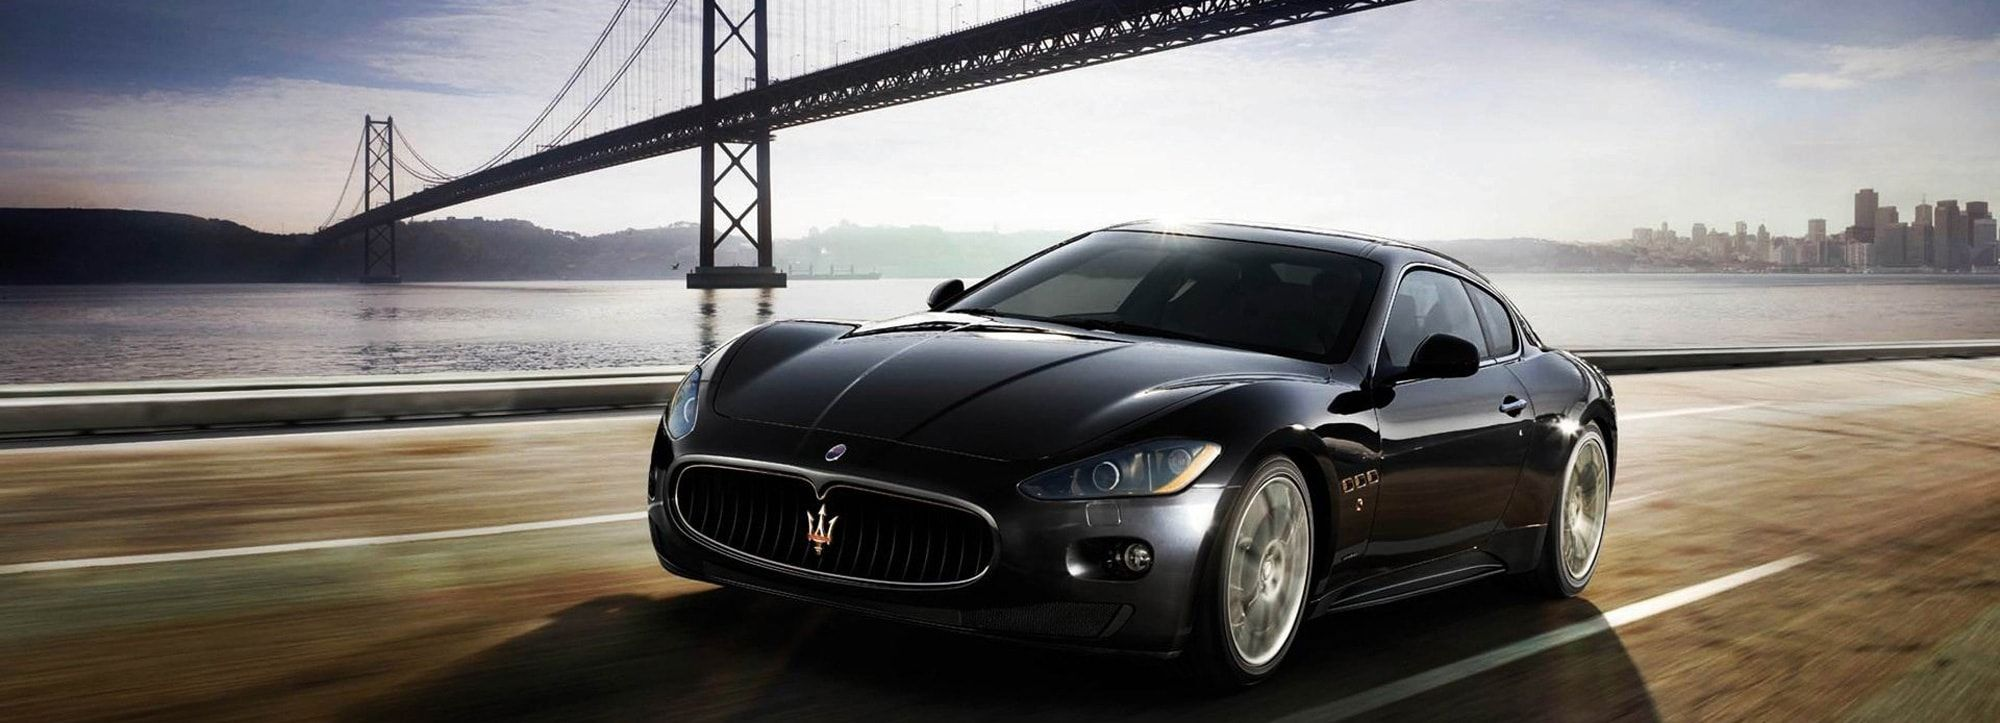 Browse Our Inventory Online For Used Quality Vehicles Https Www Salemauto Net Salemautosales Sacramento Ca Maserati Quattroporte Cars For Sale Car